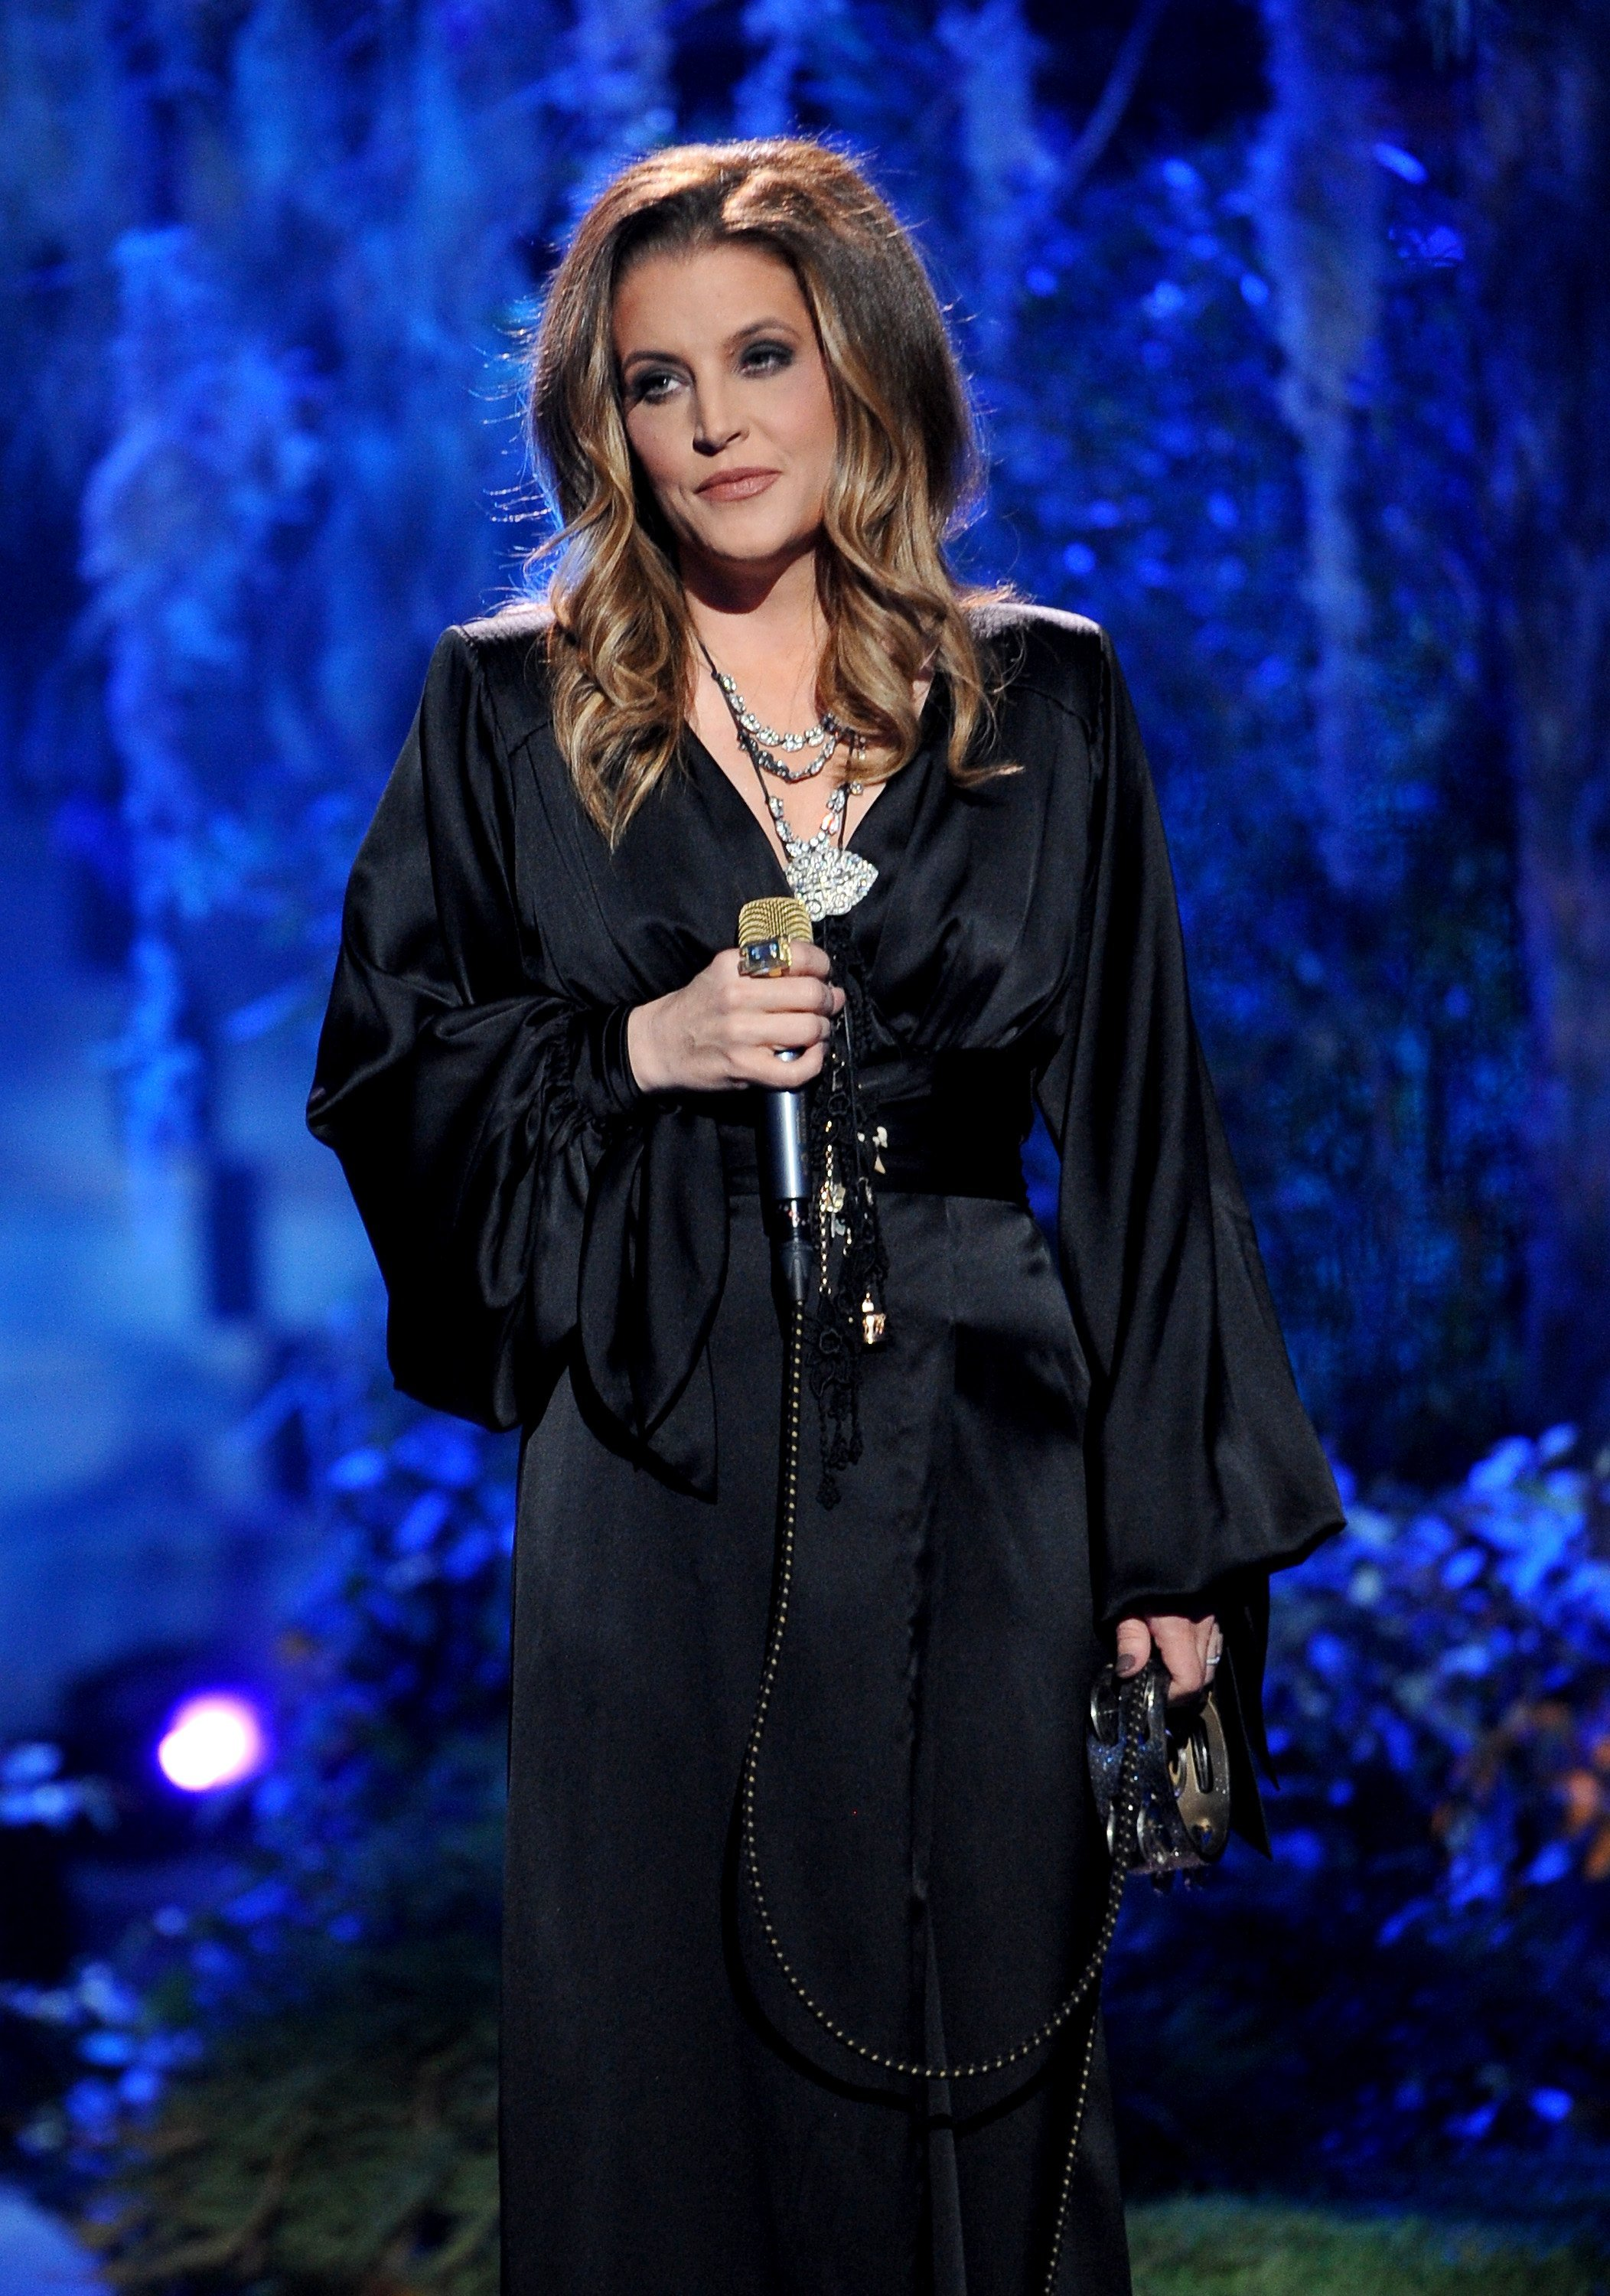 Lisa Marie Presley performs during a pre-tape onstage at FOX's American Idol Season 11 Top 3 To 2 Live Elimination Show on May 17, 2012, in Hollywood, California. | Source: Getty Images.